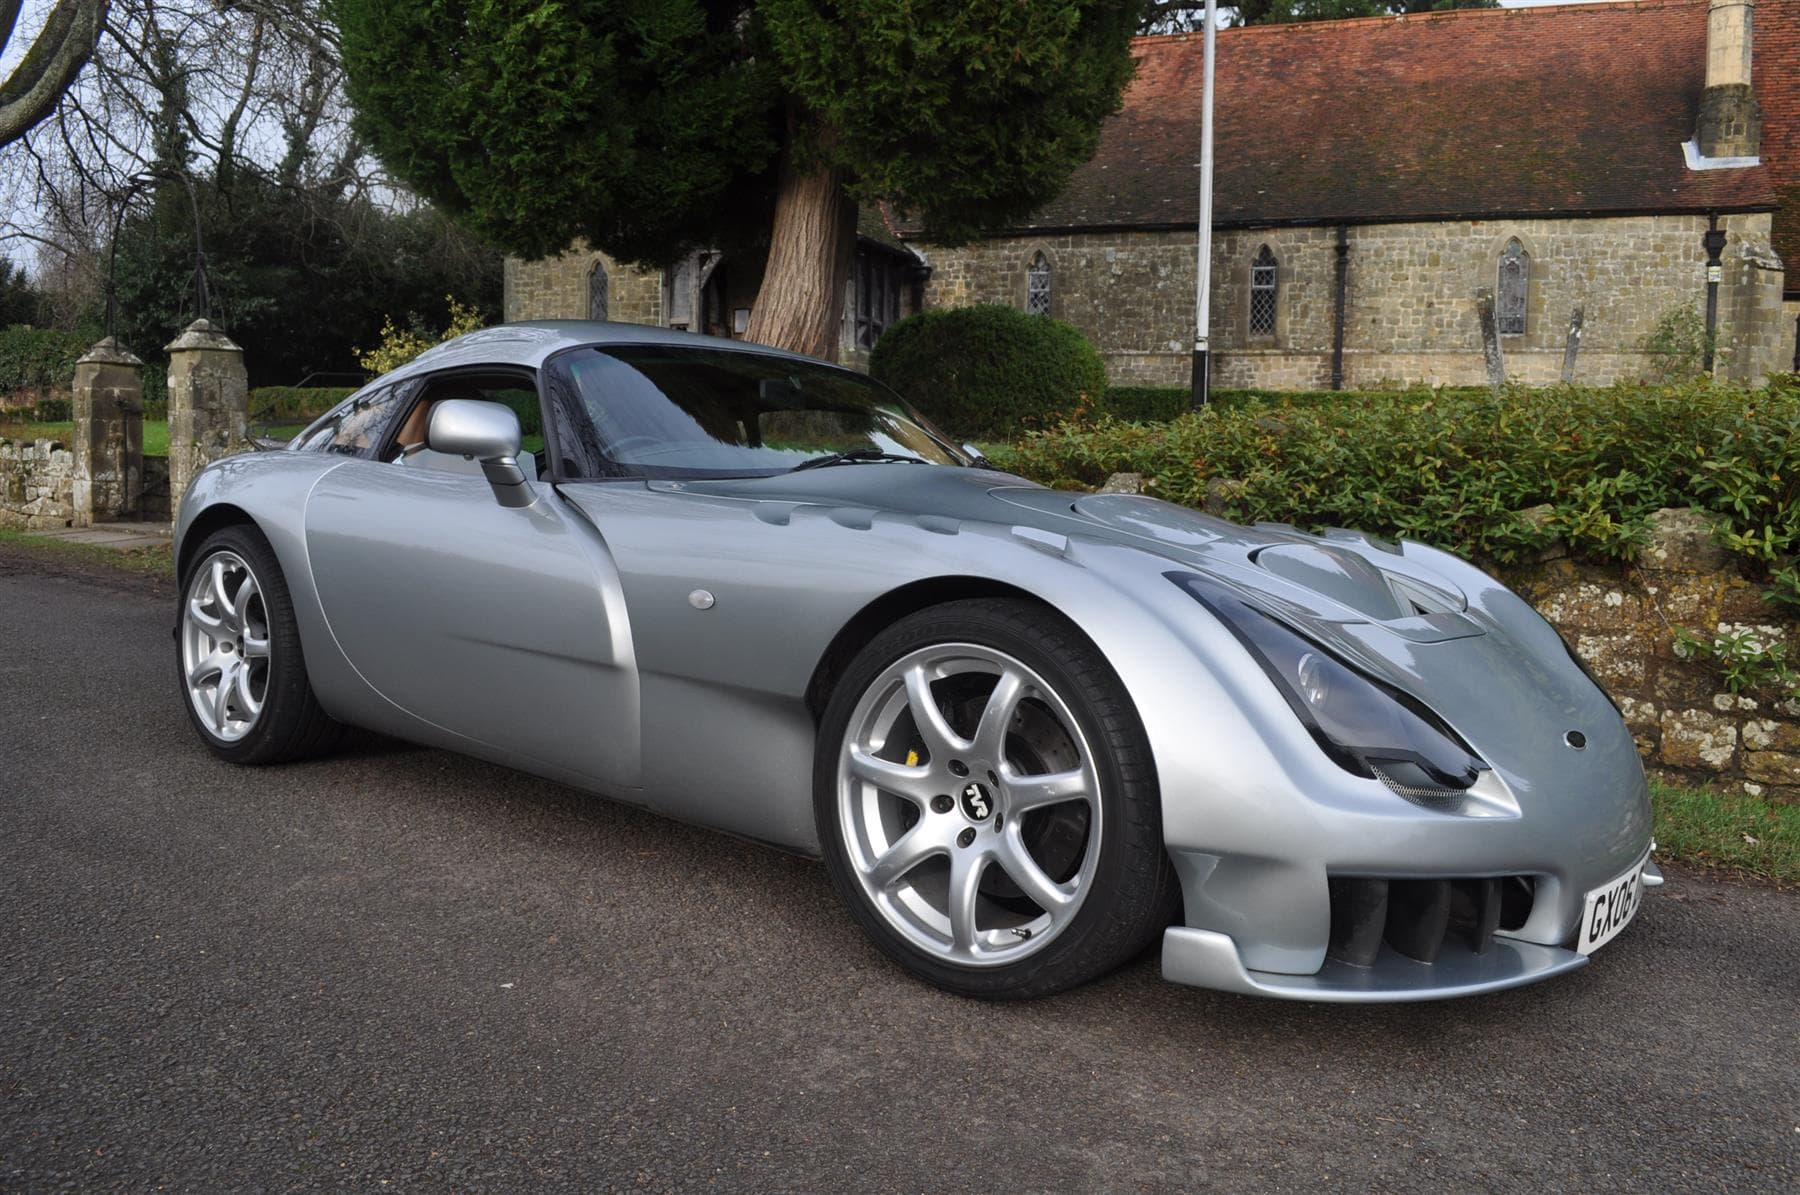 2005 TVR Sagaris Full hd wallpapers